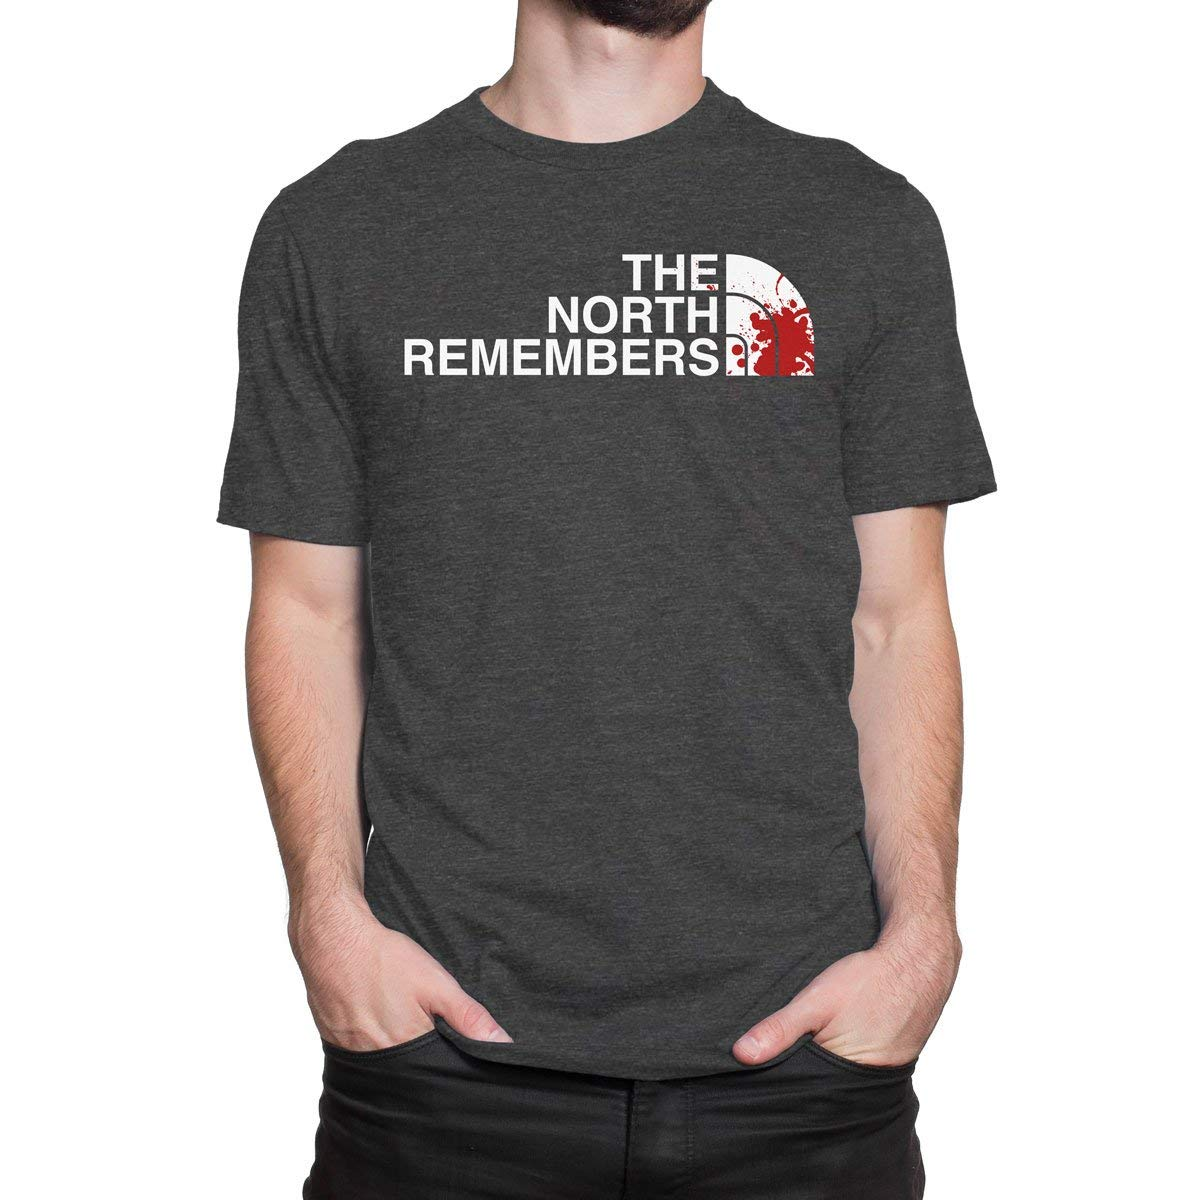 729048105 AMANTSHIRTS The North Remembers Men's T-Shirt: Amazon.ca: Clothing ...